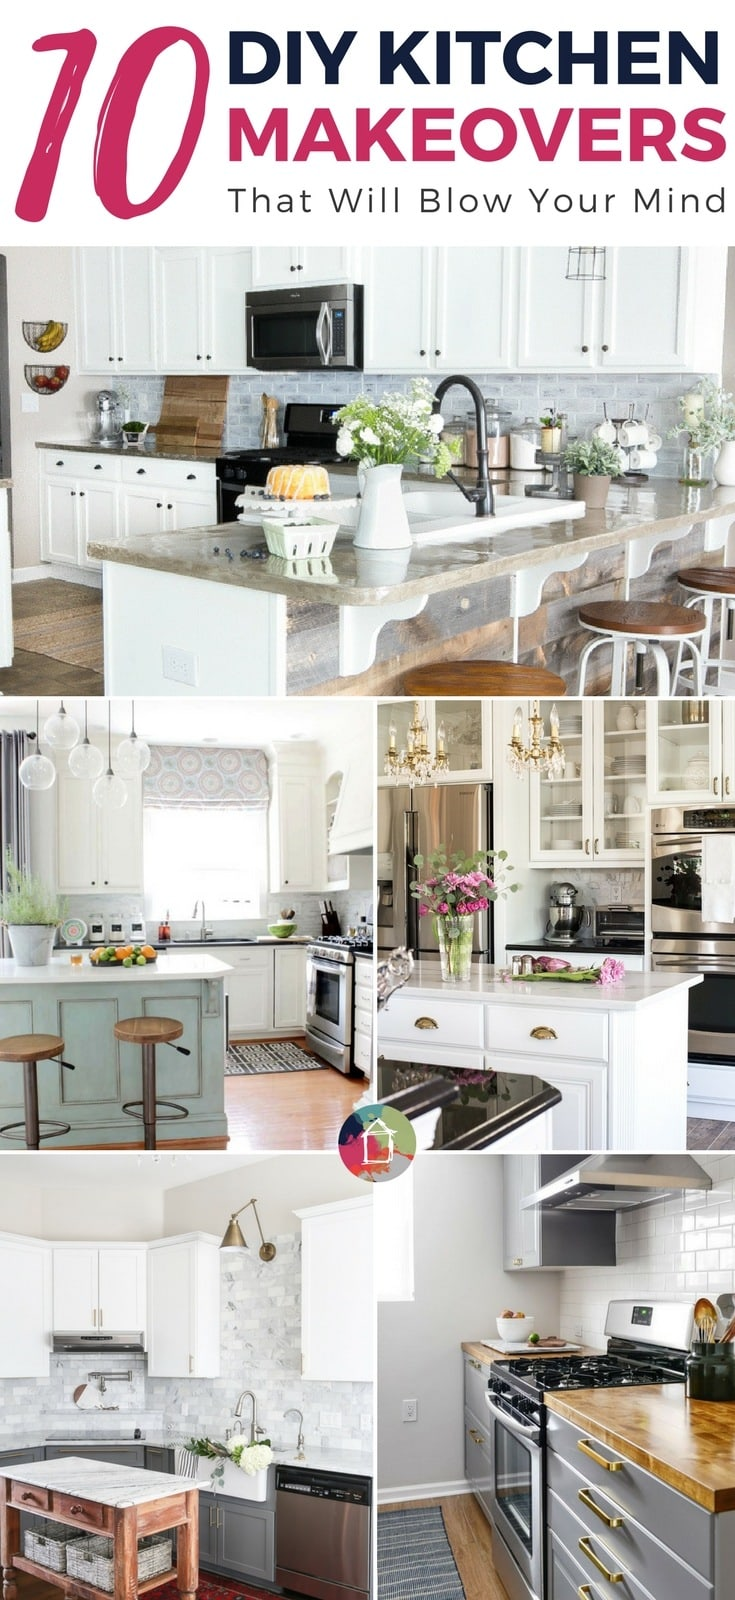 10+ DIY Kitchen Makeovers That Will Blow Your Mind ...